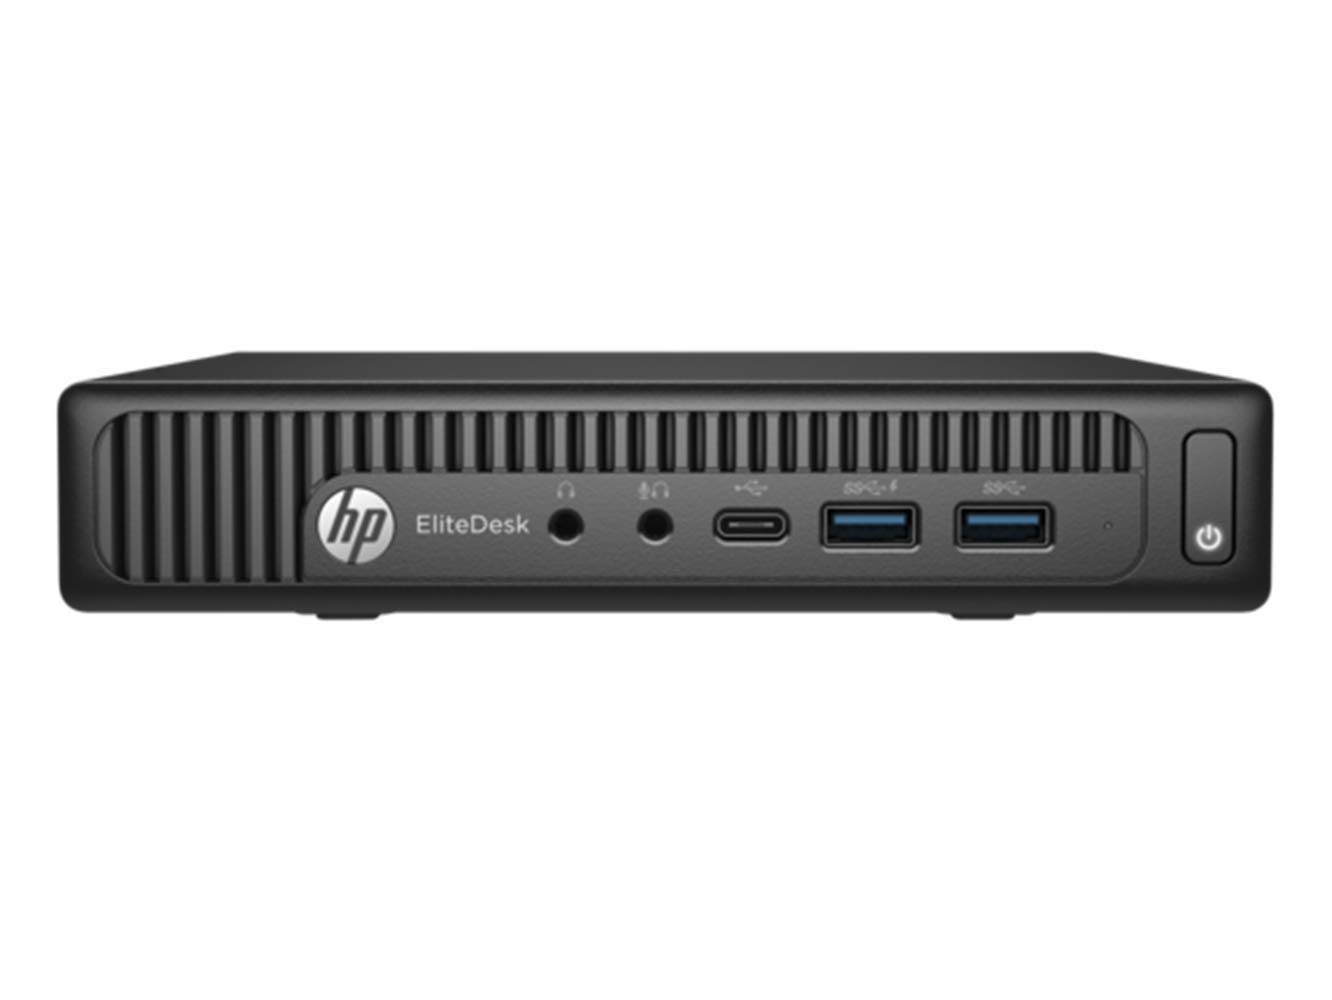 HP EliteDesk 800 65W G2 Business Mini PC Desktop Computer/Intel Quad-Core i5-6500T up to 3.1GHz/ 8GB DDR4 RAM/ 256GB SSD/WiFi/Bluetooth/USB 3.0/ Windows 10 Professional OS(Renewed)